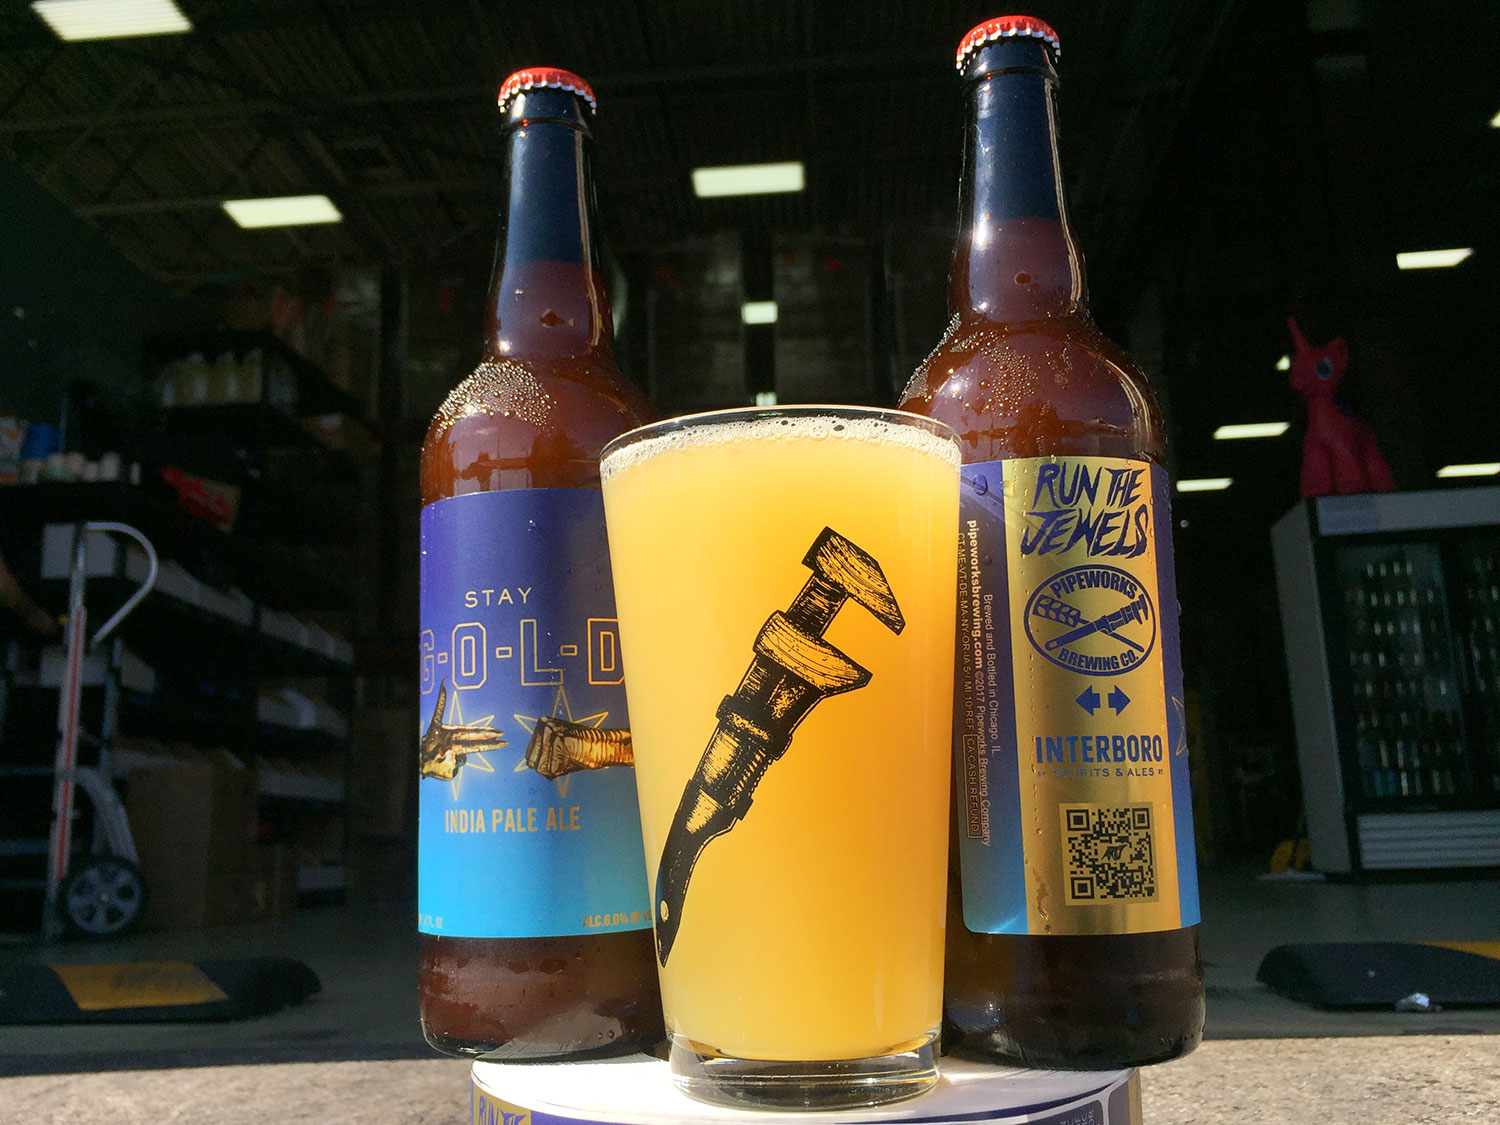 Run the Jewels 'Stay Gold' Beer Is Returning for Lollapalooza